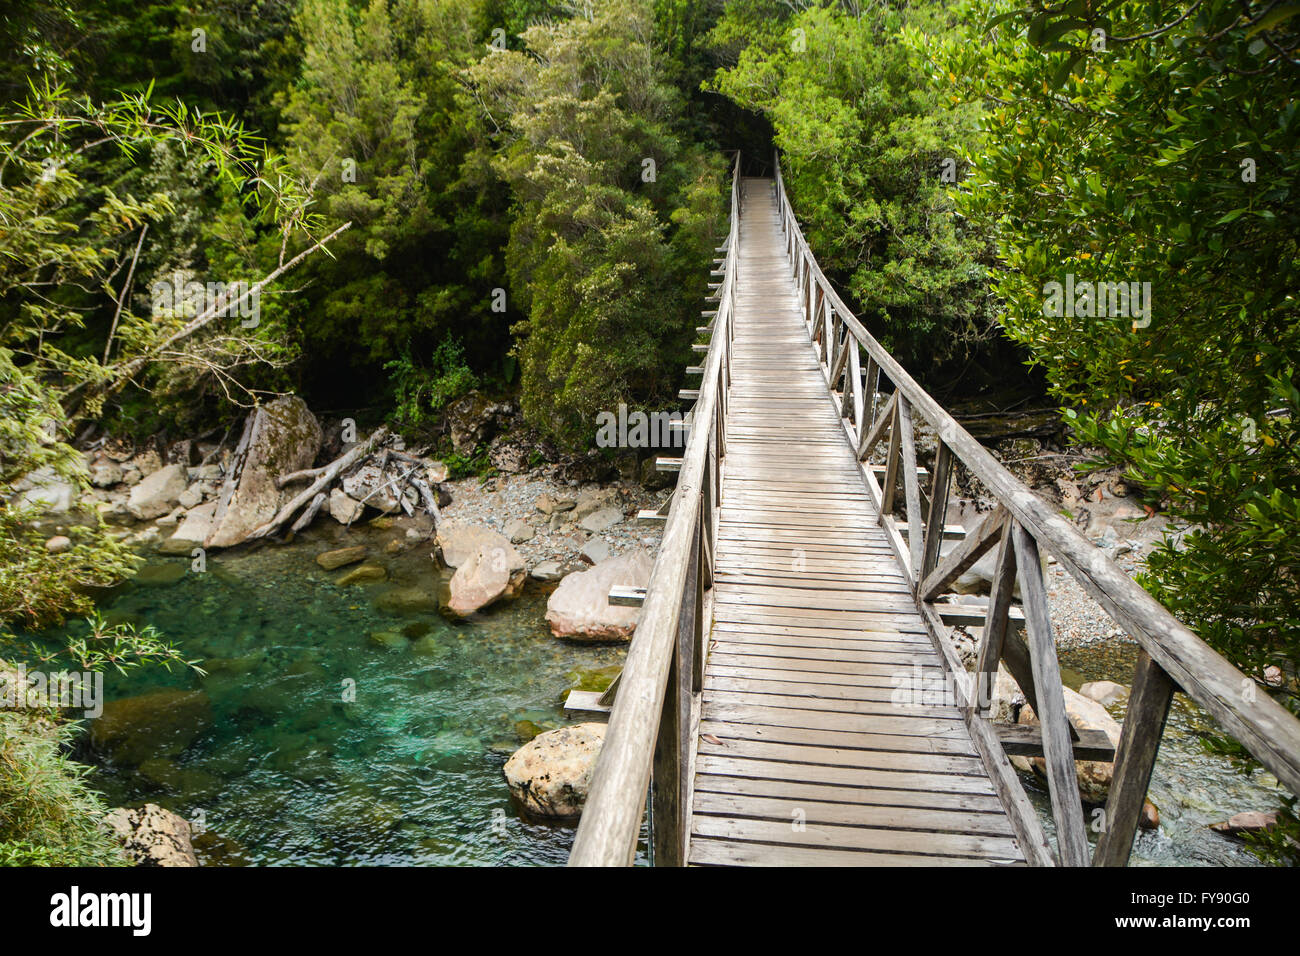 Wooden bridge crossing a clear blue river, Parque Pumalin, Patagonia, Chile - Stock Image